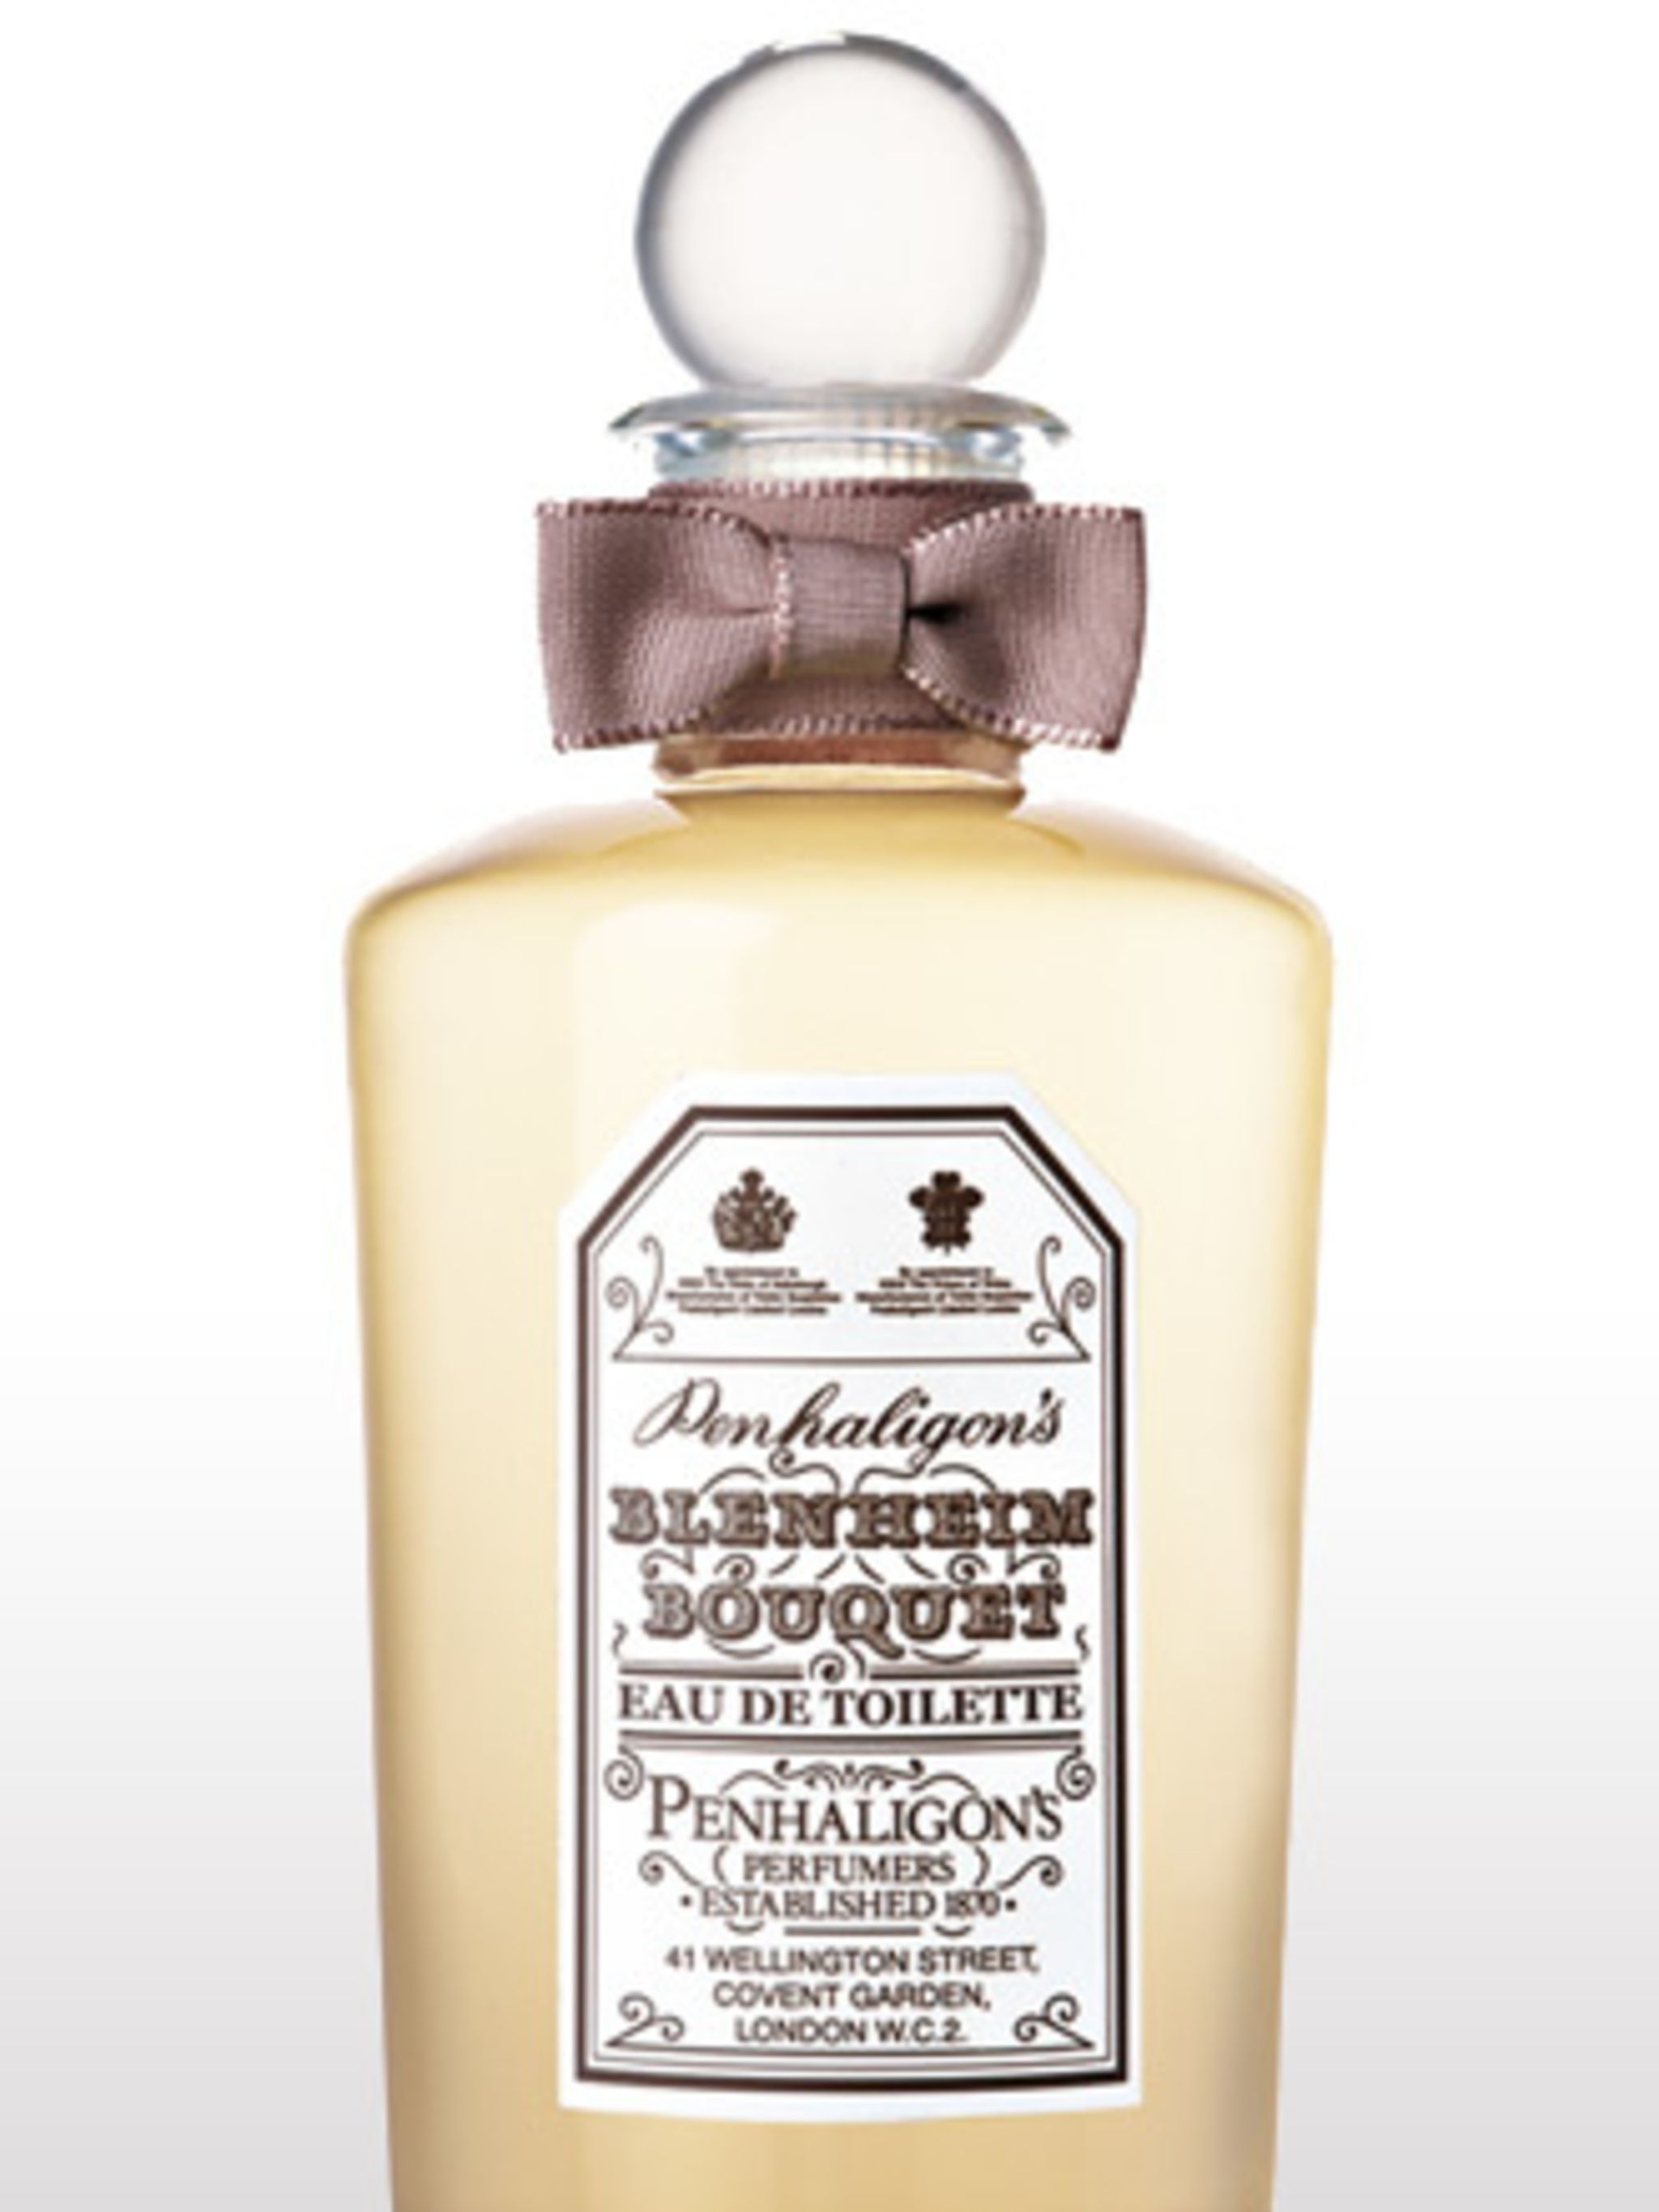 <p>Penhaligon's is another British Institution - the brainchild of Englishman William Penhaligon, it has been part of our perfume culture since the Victorian era (1870 to be precise).  From the first fragrance, Hammam Bouquet which launched in 1872 to its